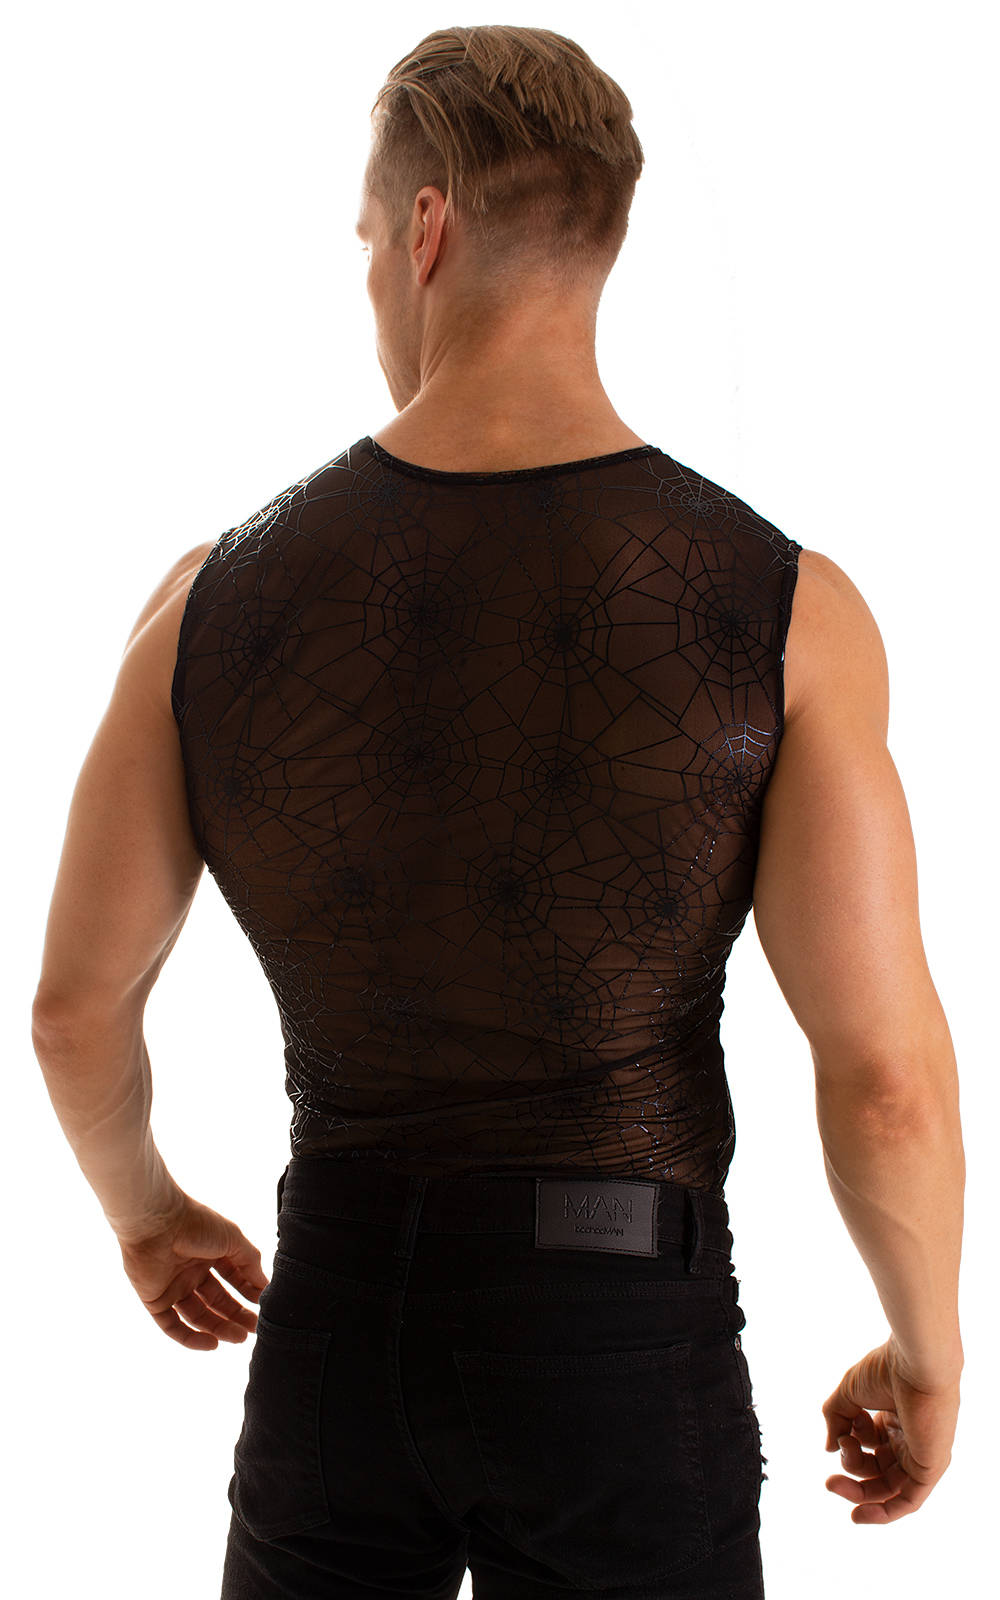 Sleeveless Lycra Muscle Tee in Spiderweb Stretch Mesh 4